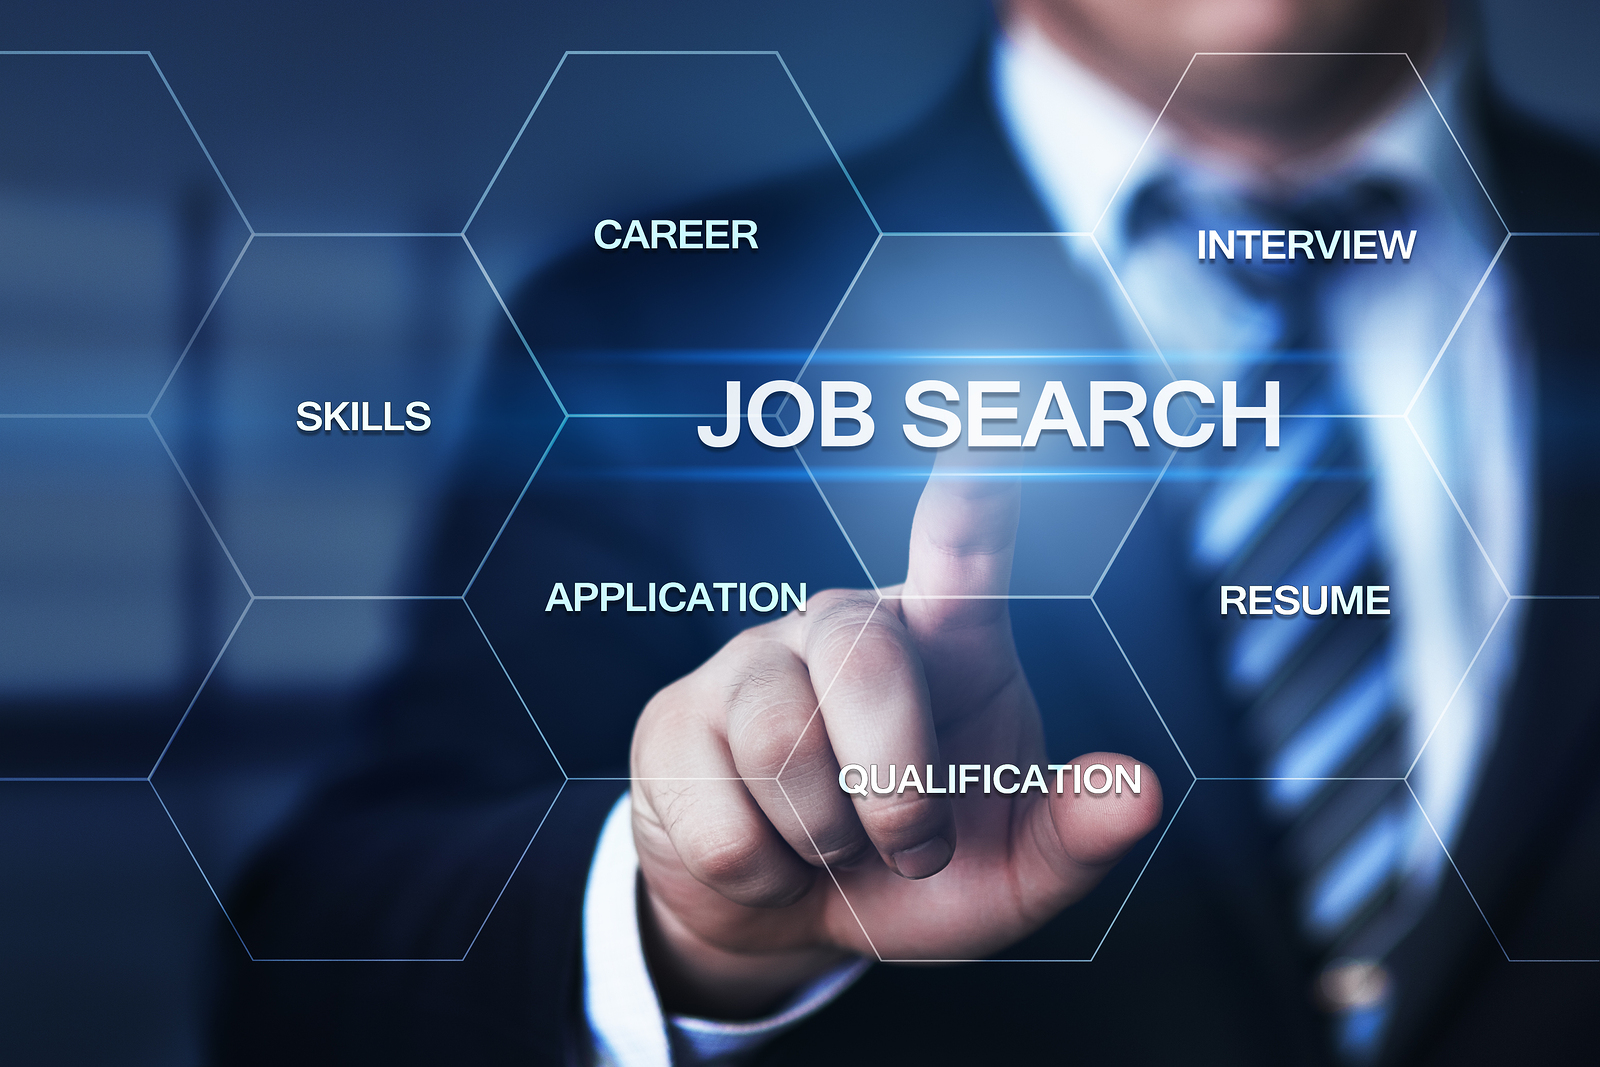 abstract photo denoting a professional engaged in a job search